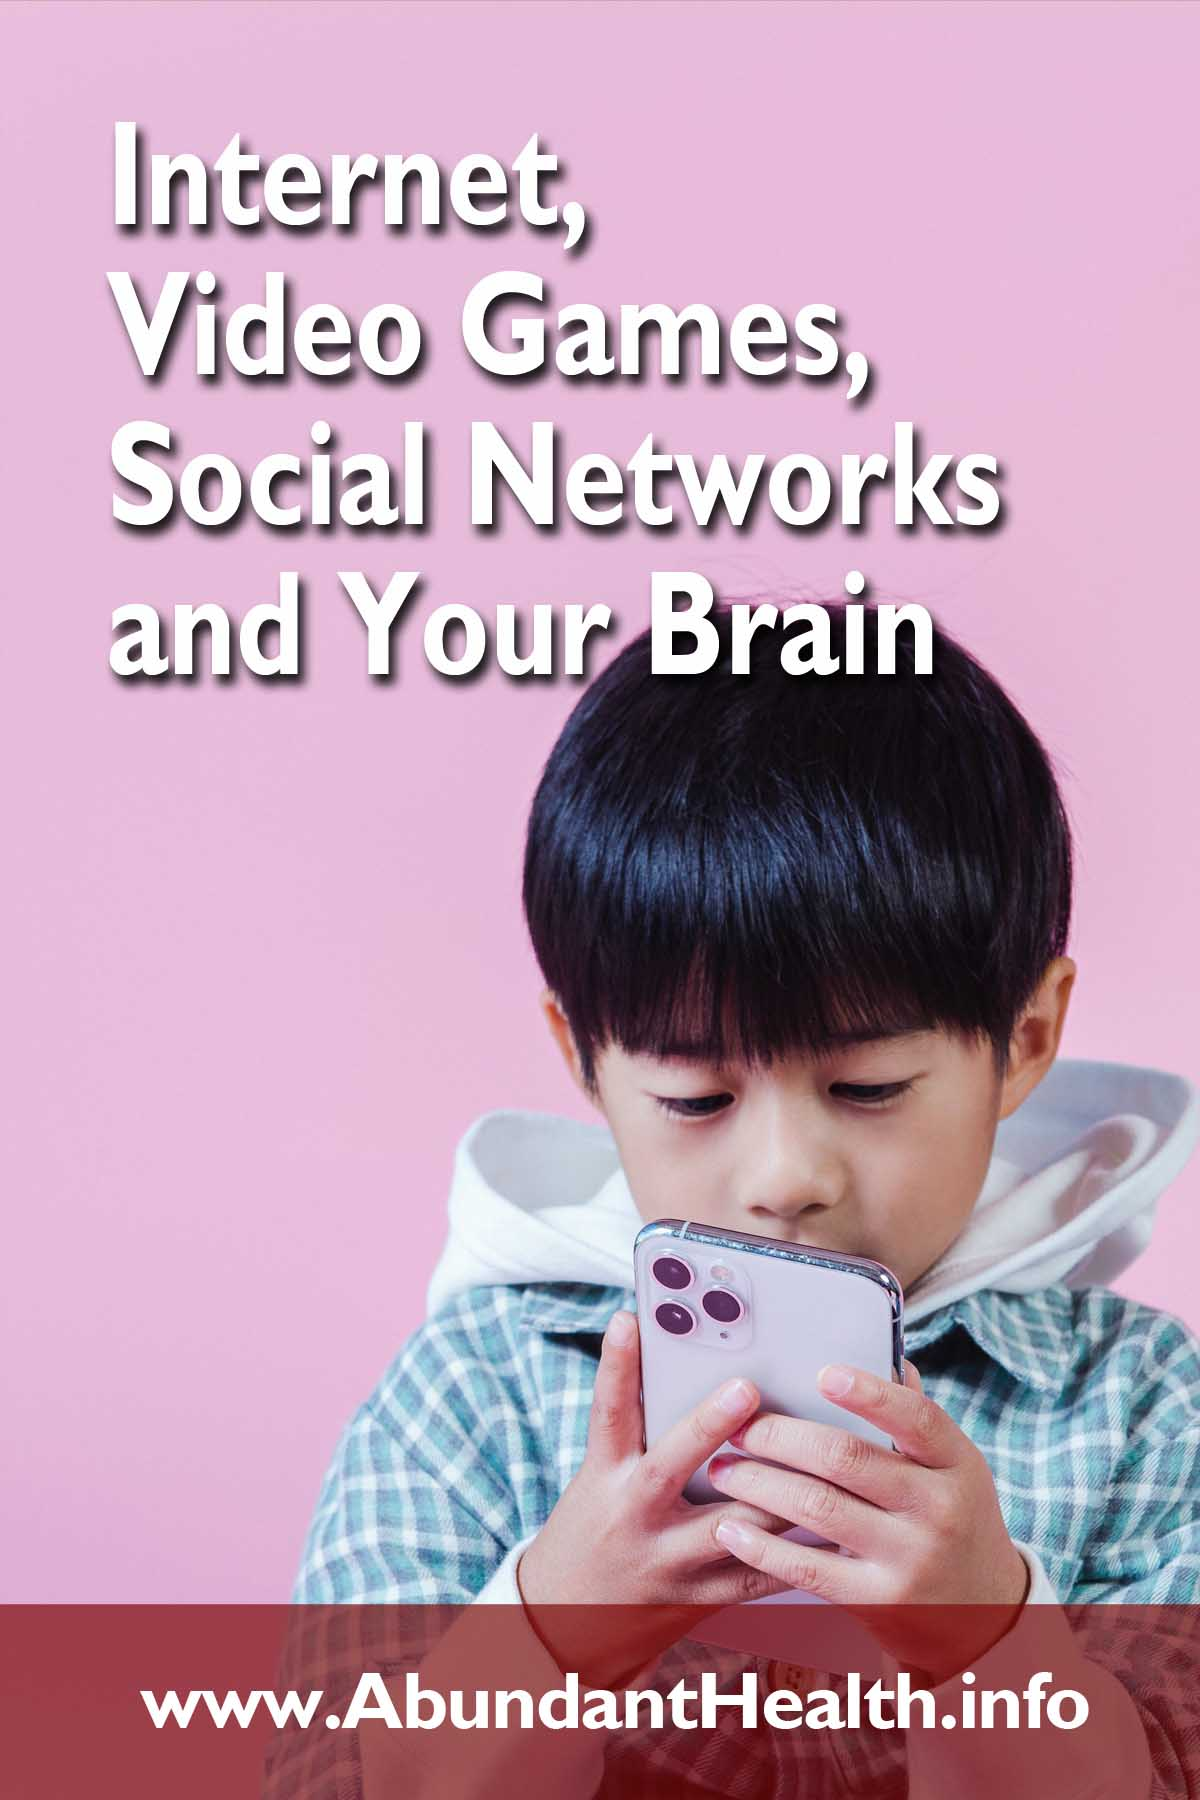 Internet, Video Games, Social Networks and Your Brain